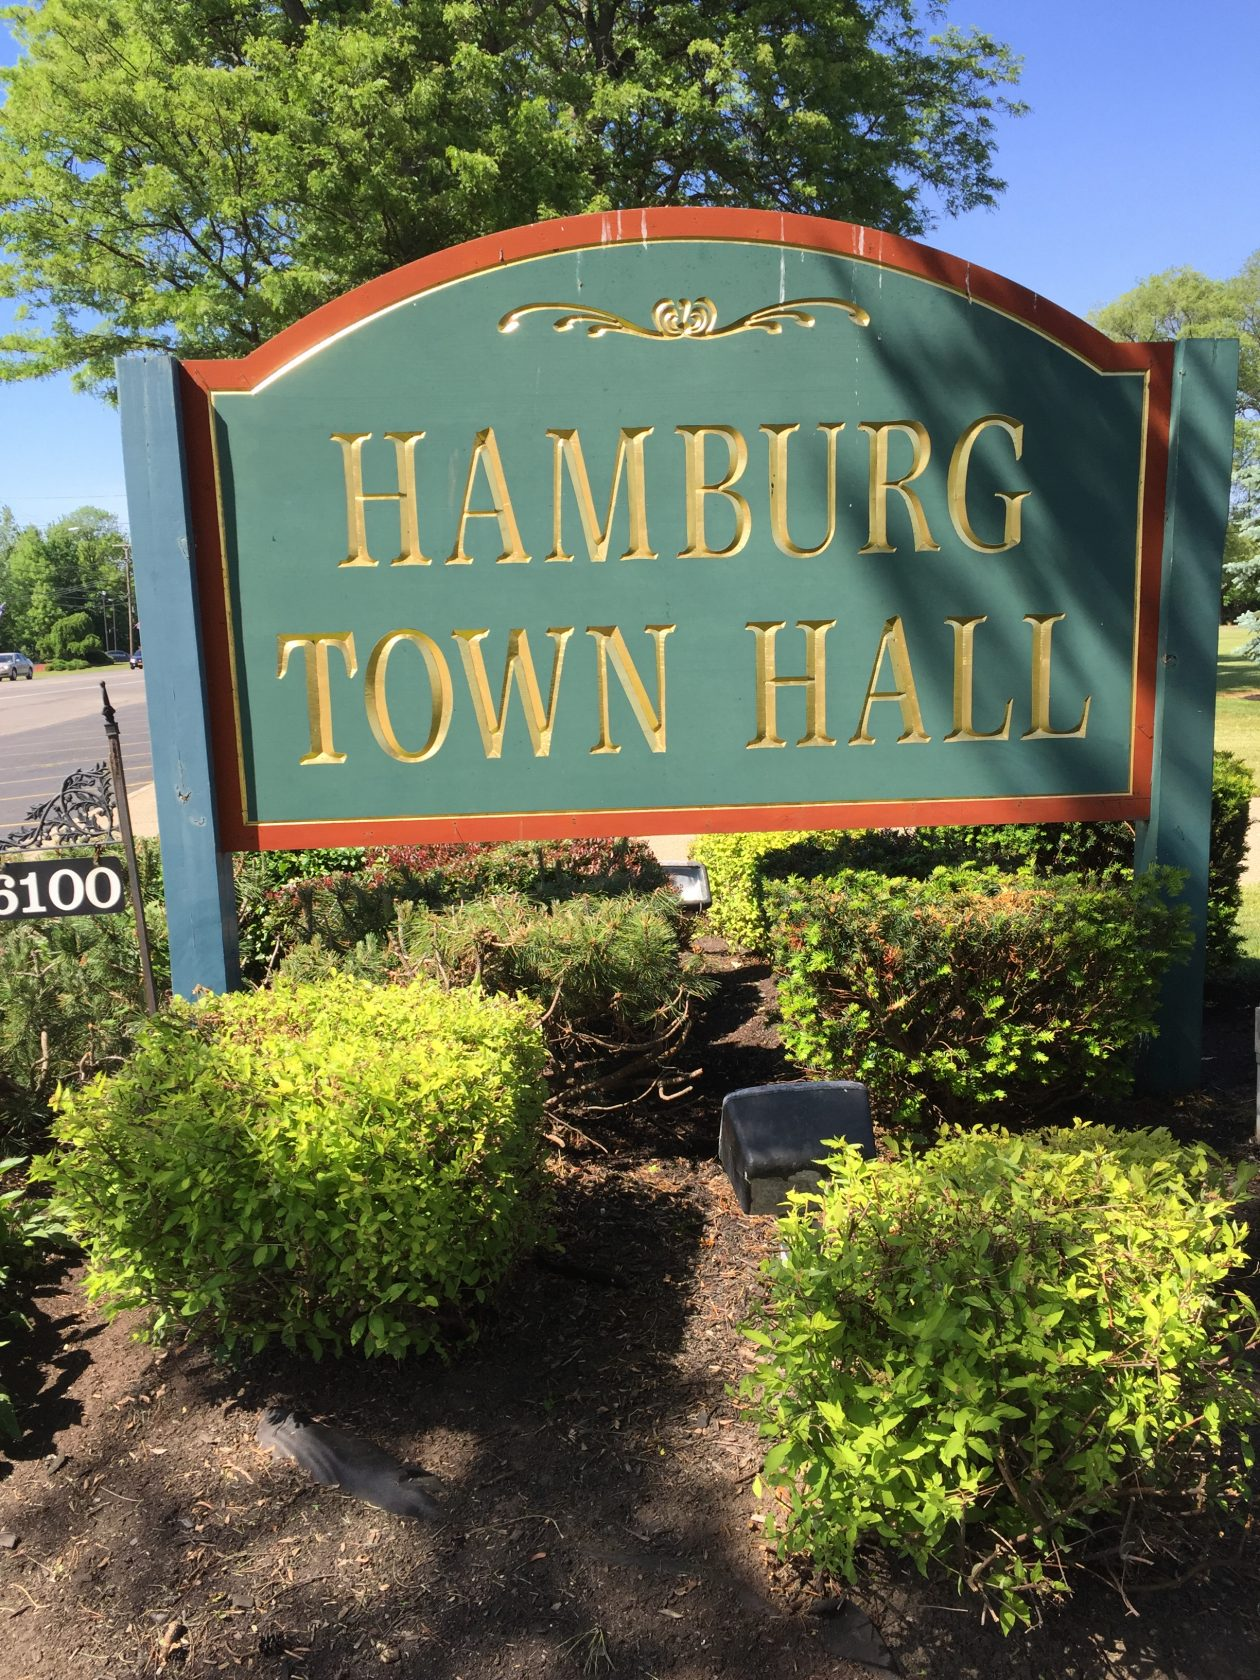 Hamburg fires crew chief charged with stealing town property